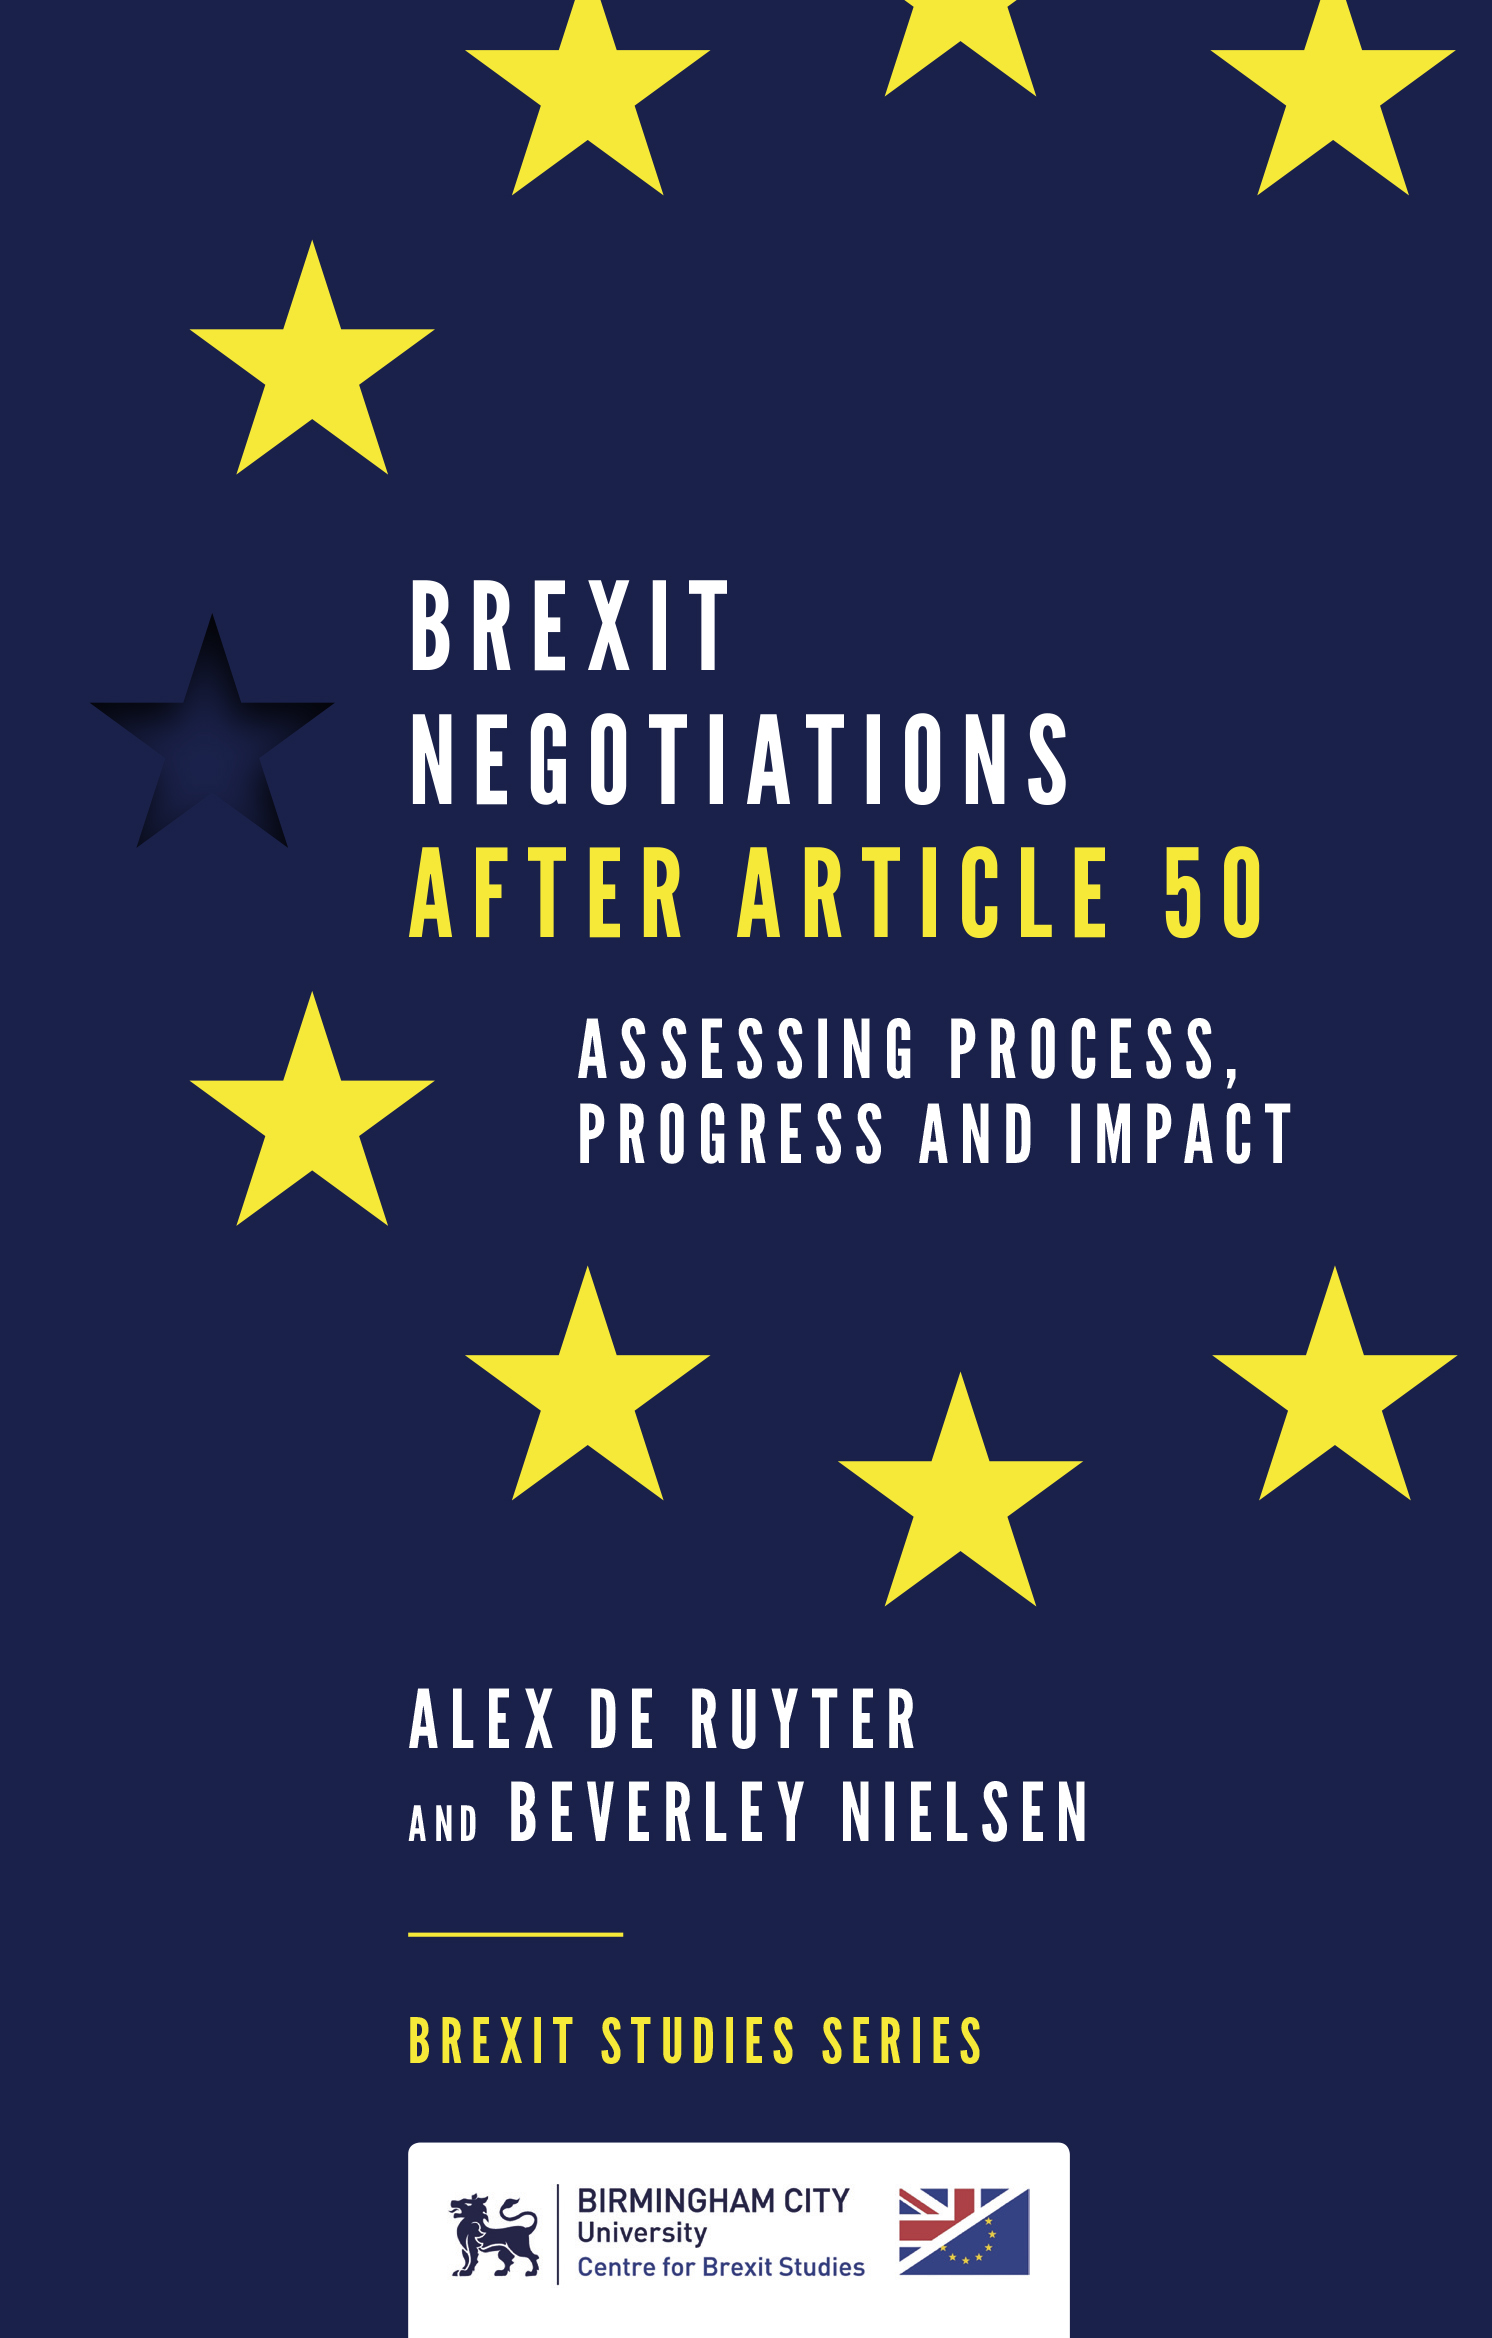 Book cover for Brexit Negotiations After Article 50:  Assessing Process, Progress and Impact a book by Alex de Ruyter, Beverley Nielsen